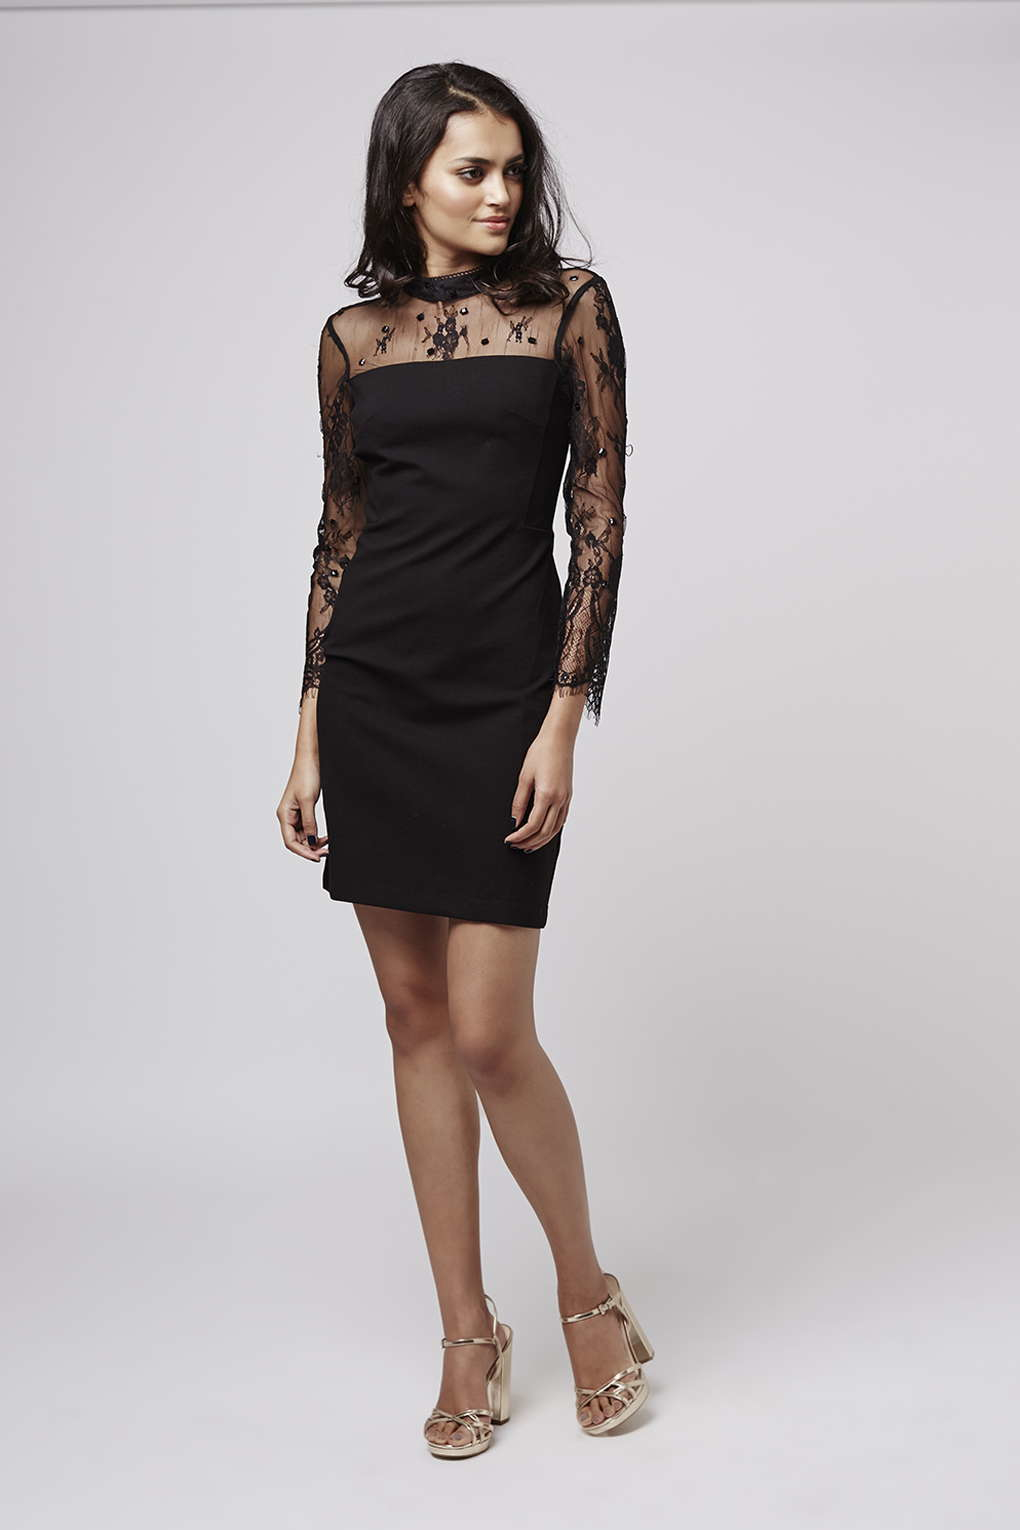 Bead and lace bodycon dress